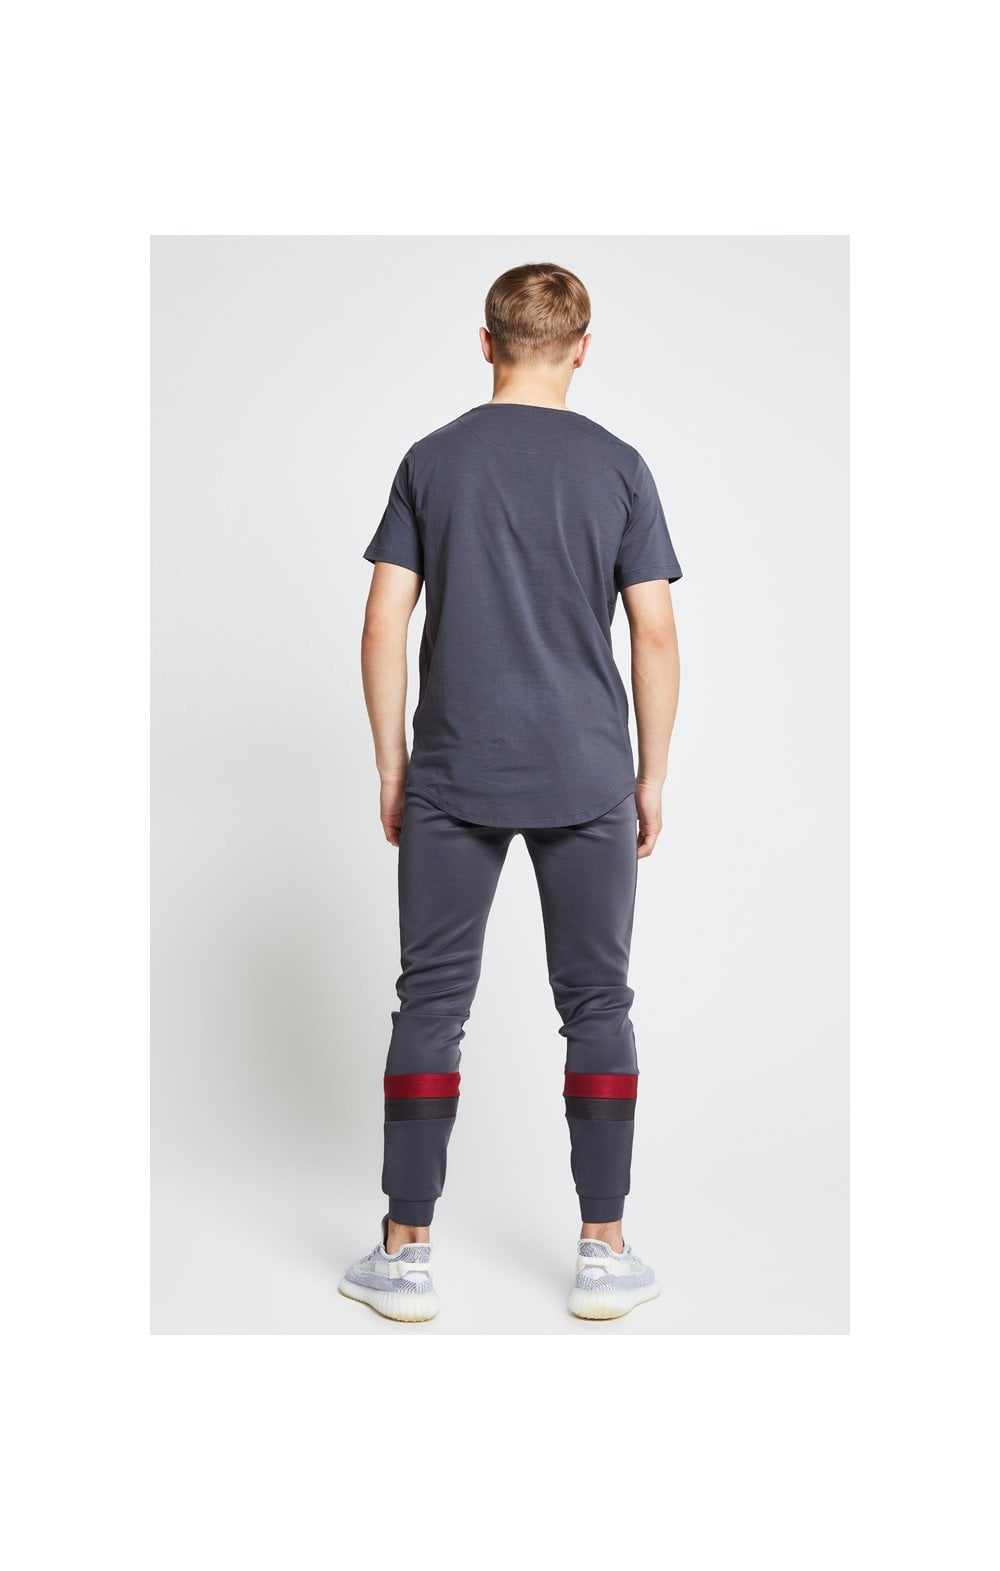 Illusive London Contrast Cut & Sew Tee - Grey & Pink (5)